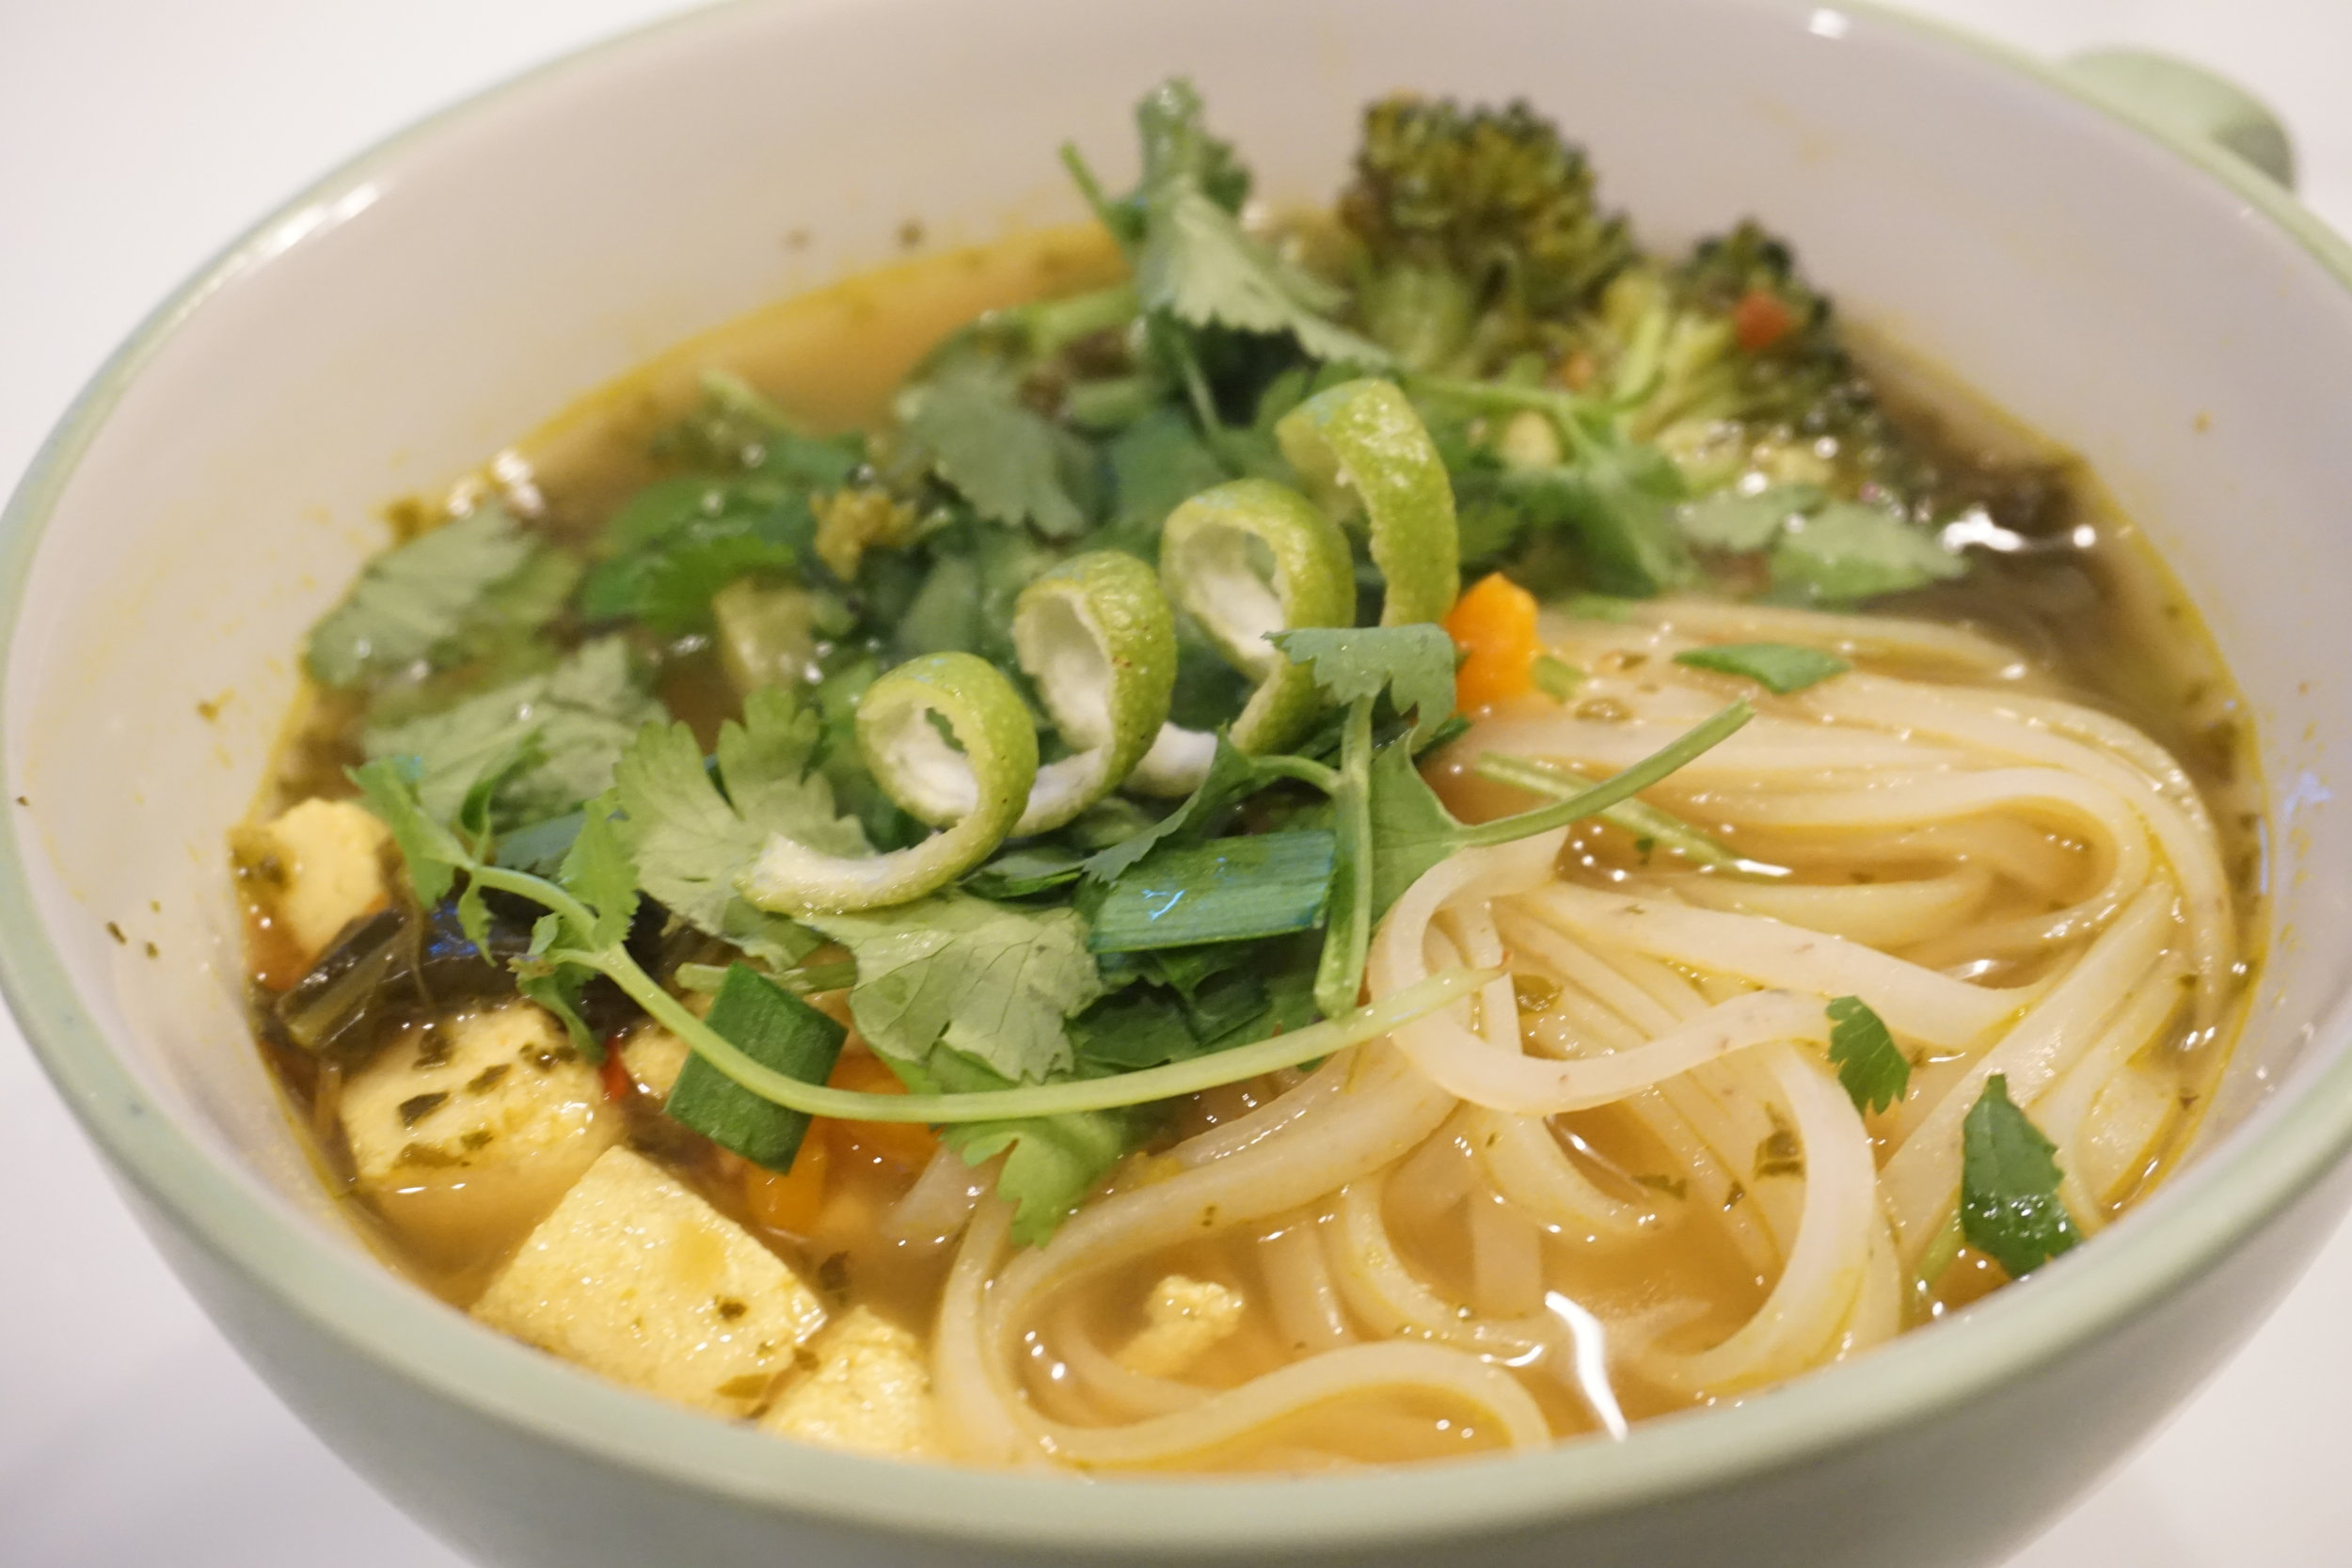 Vegan Lemongrass Soup with broccoli, brown rice noodles, garlic chives, and cilantro